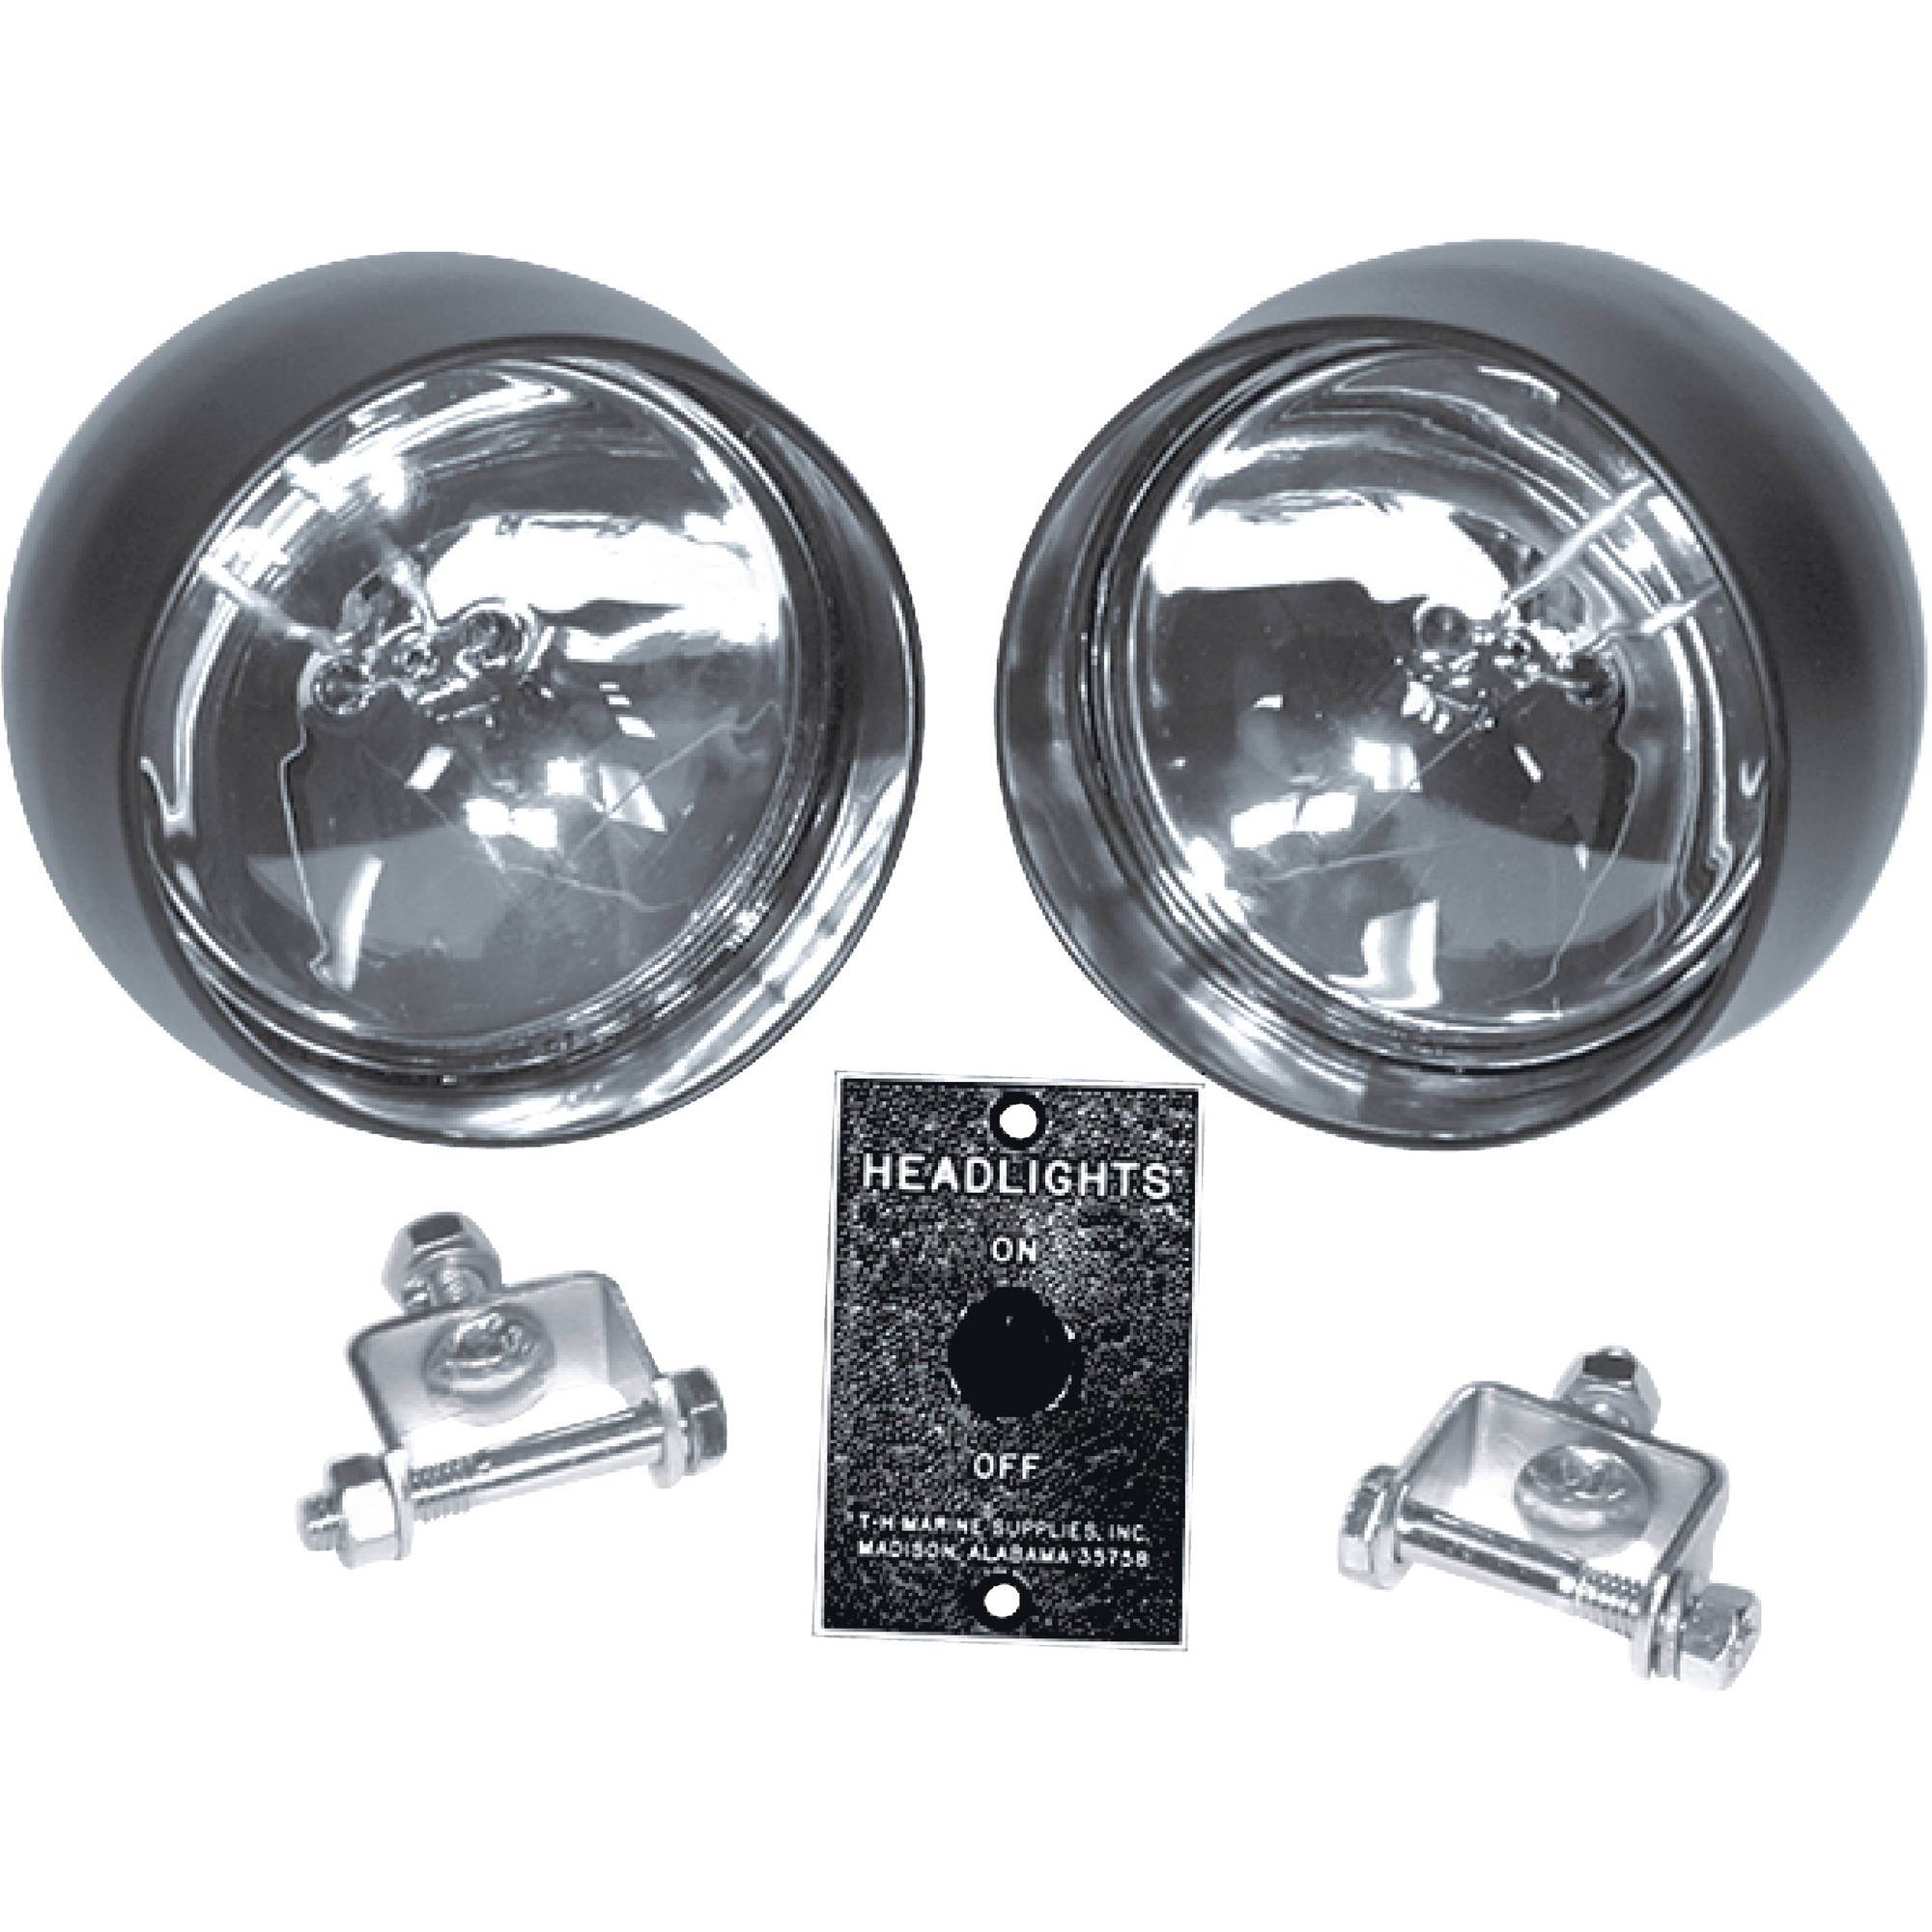 T-H Marine Head Light Kit (Includes 2 Lamps, Switch Panel and Mounting Hardware) by T-H Marine Supplies